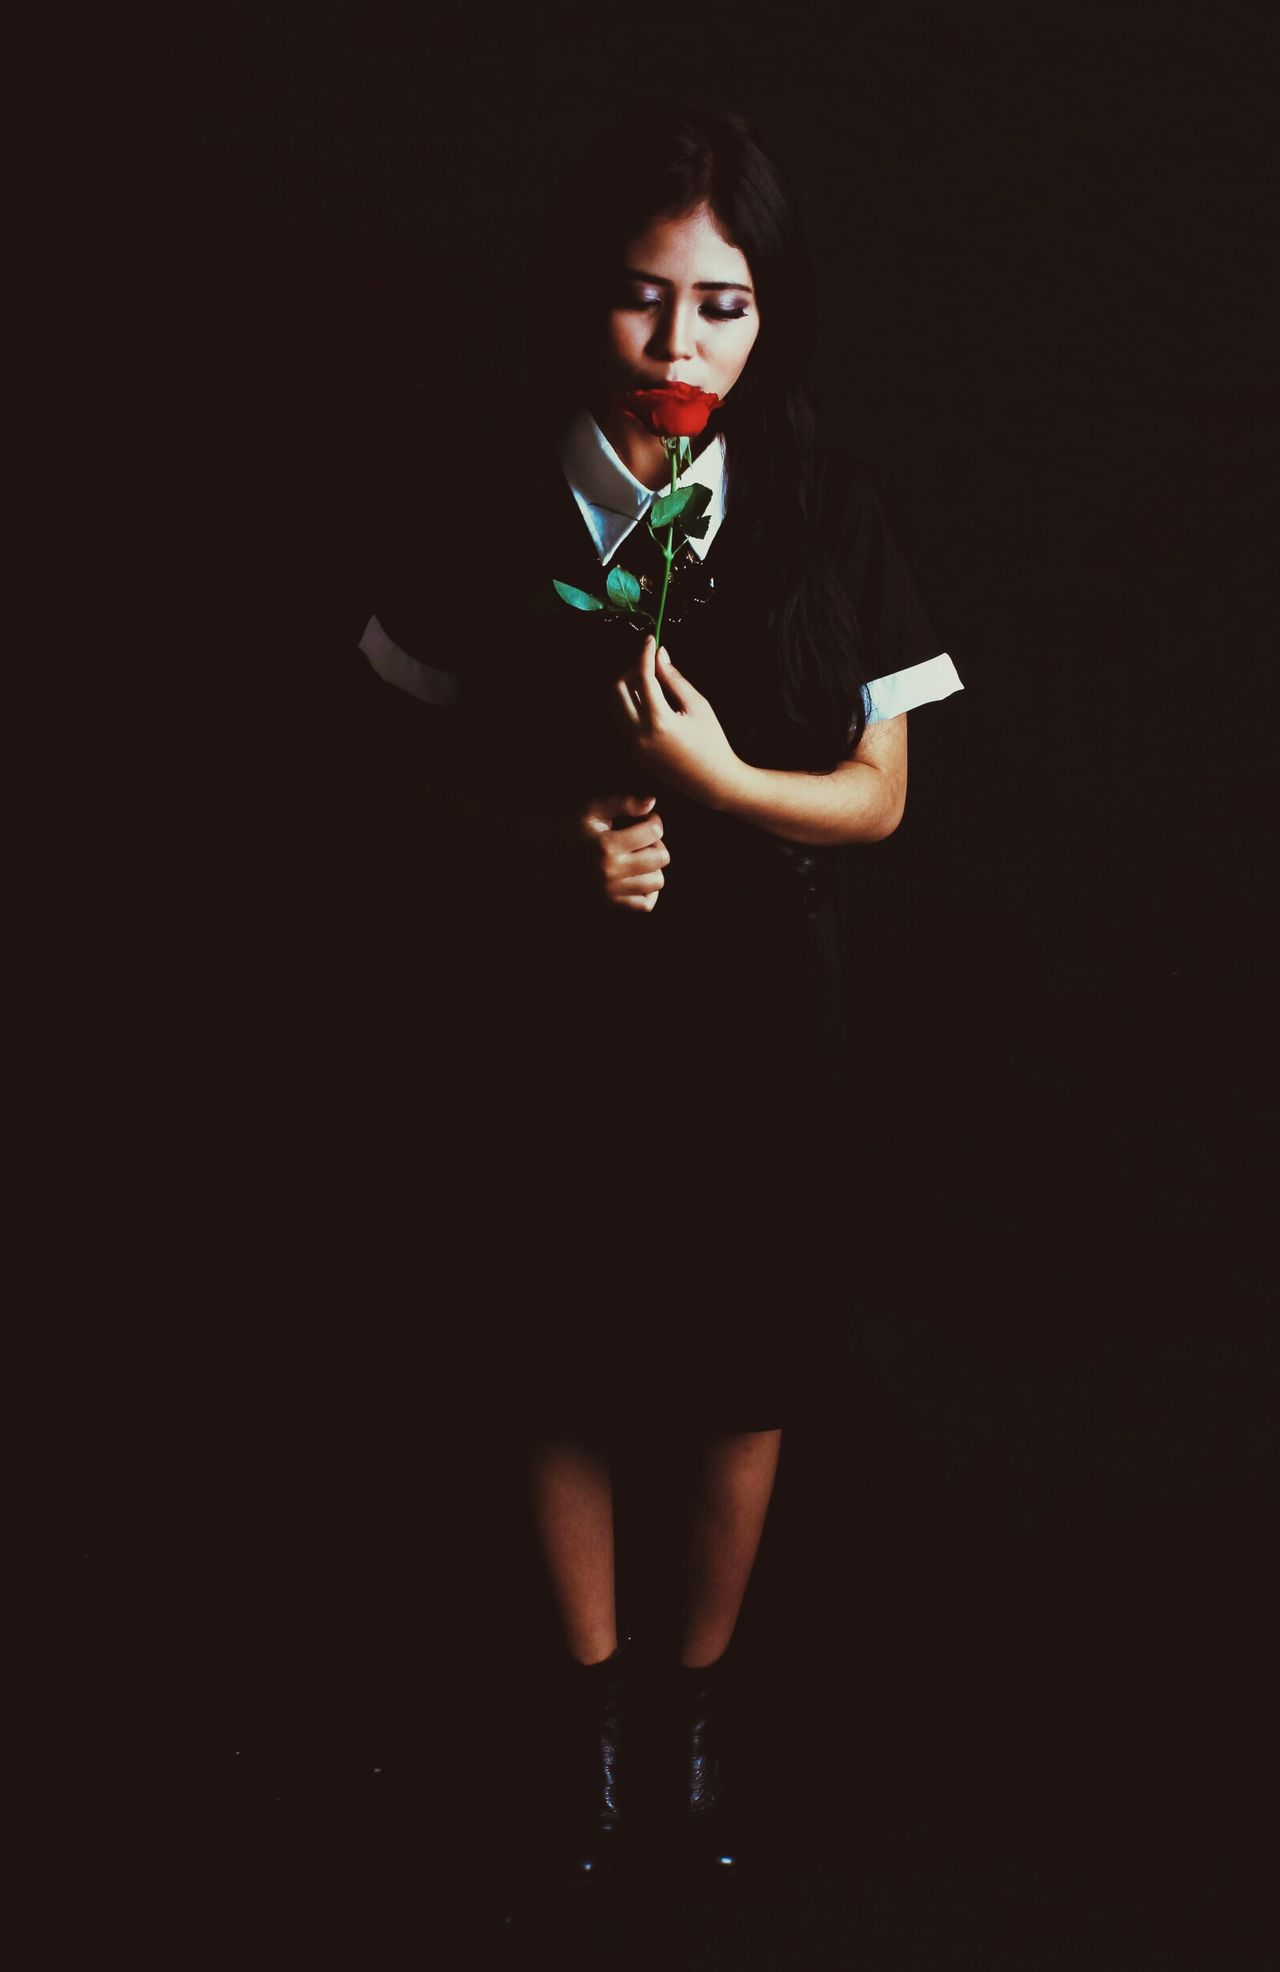 From My Point Of View Taking Photos Modeling Classic Bandung Darkart Shades Sad & Lonely Simpel Beuty Spring Flower Simpel Life From Where I Stand Hello World Old Pic  Vintage Fashion Newphotographer Roses🌹 Roses Are Red